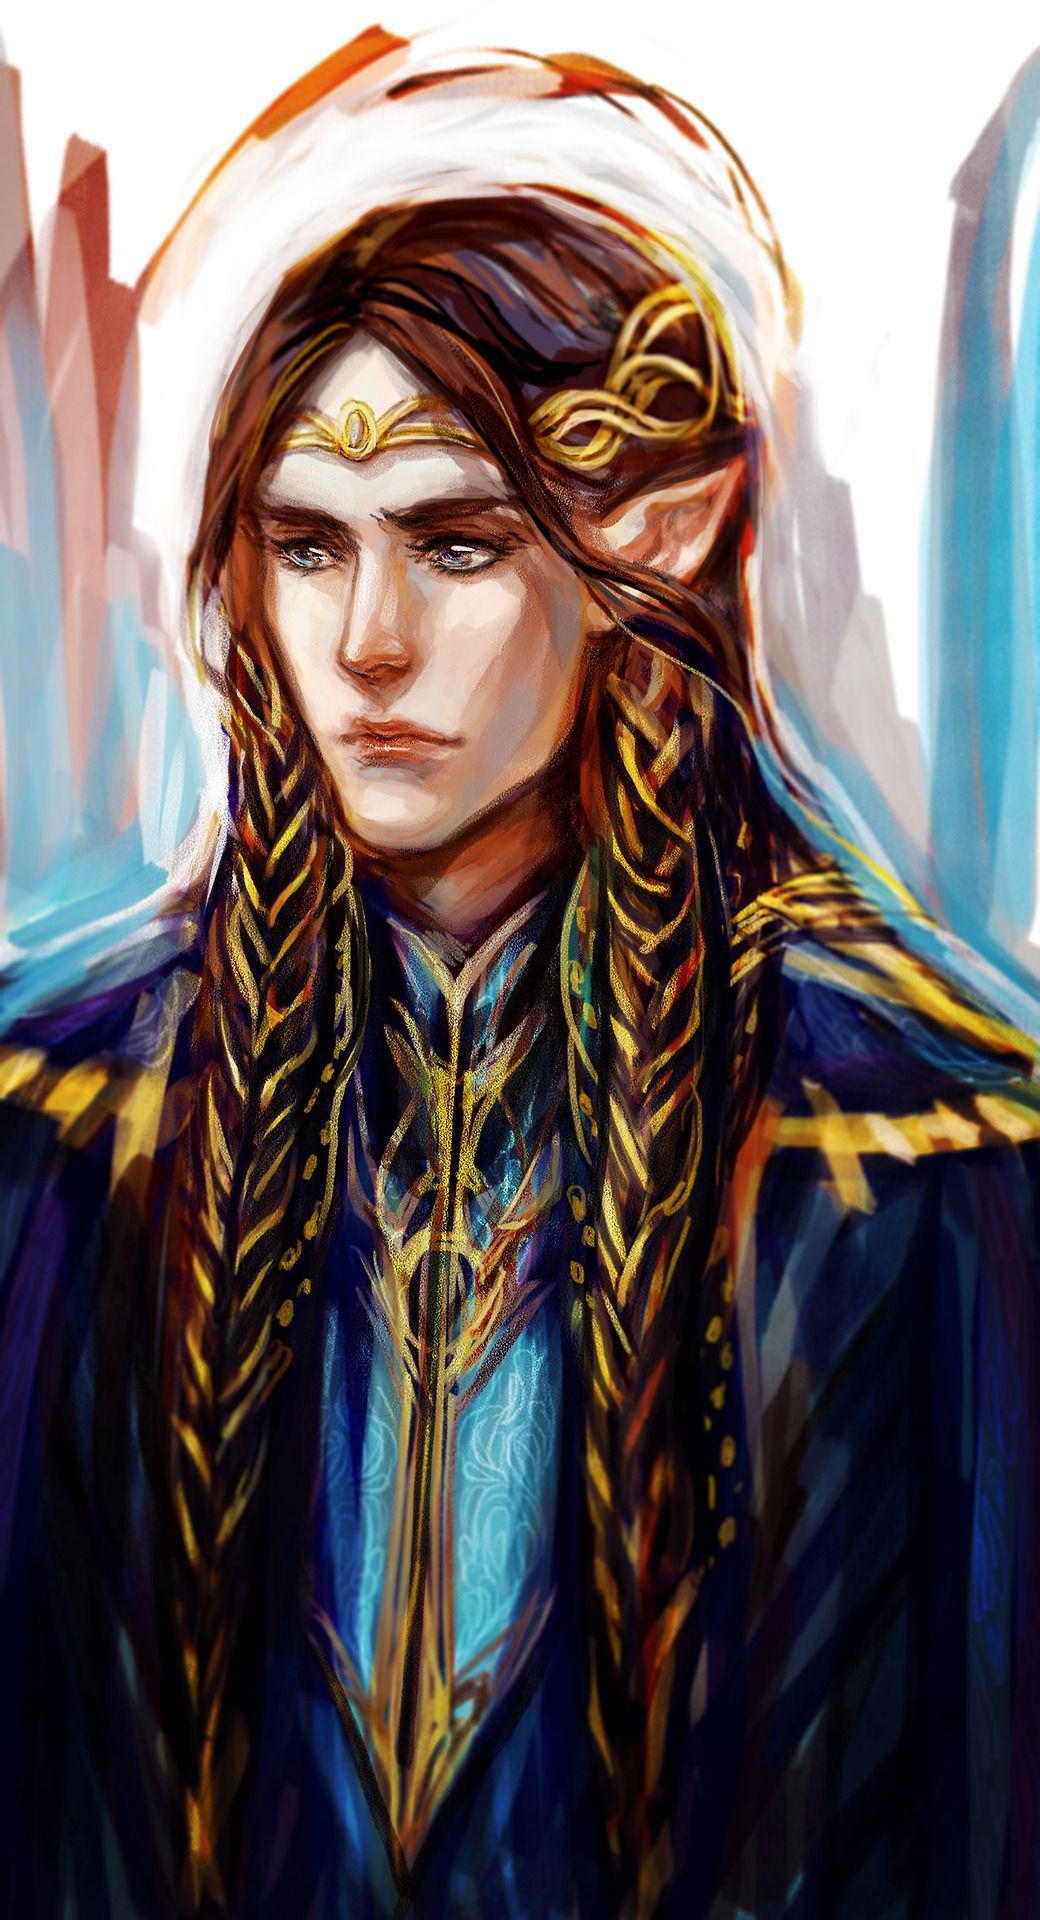 Fingon as High King for kingfingon by luaen #silmarillion #fanart